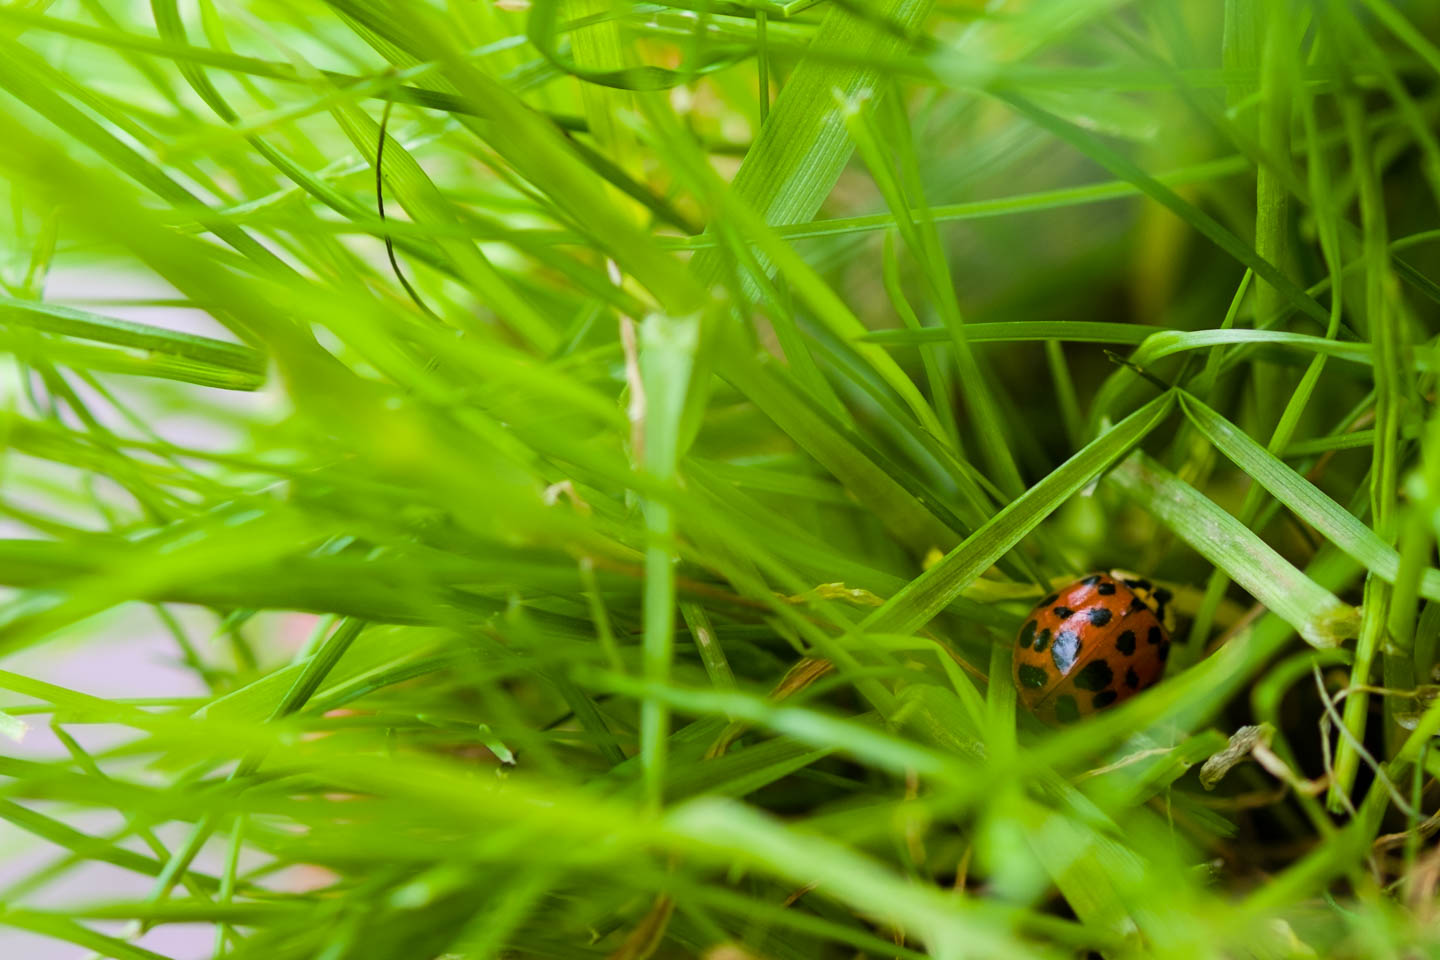 A lady bug hides in the grass